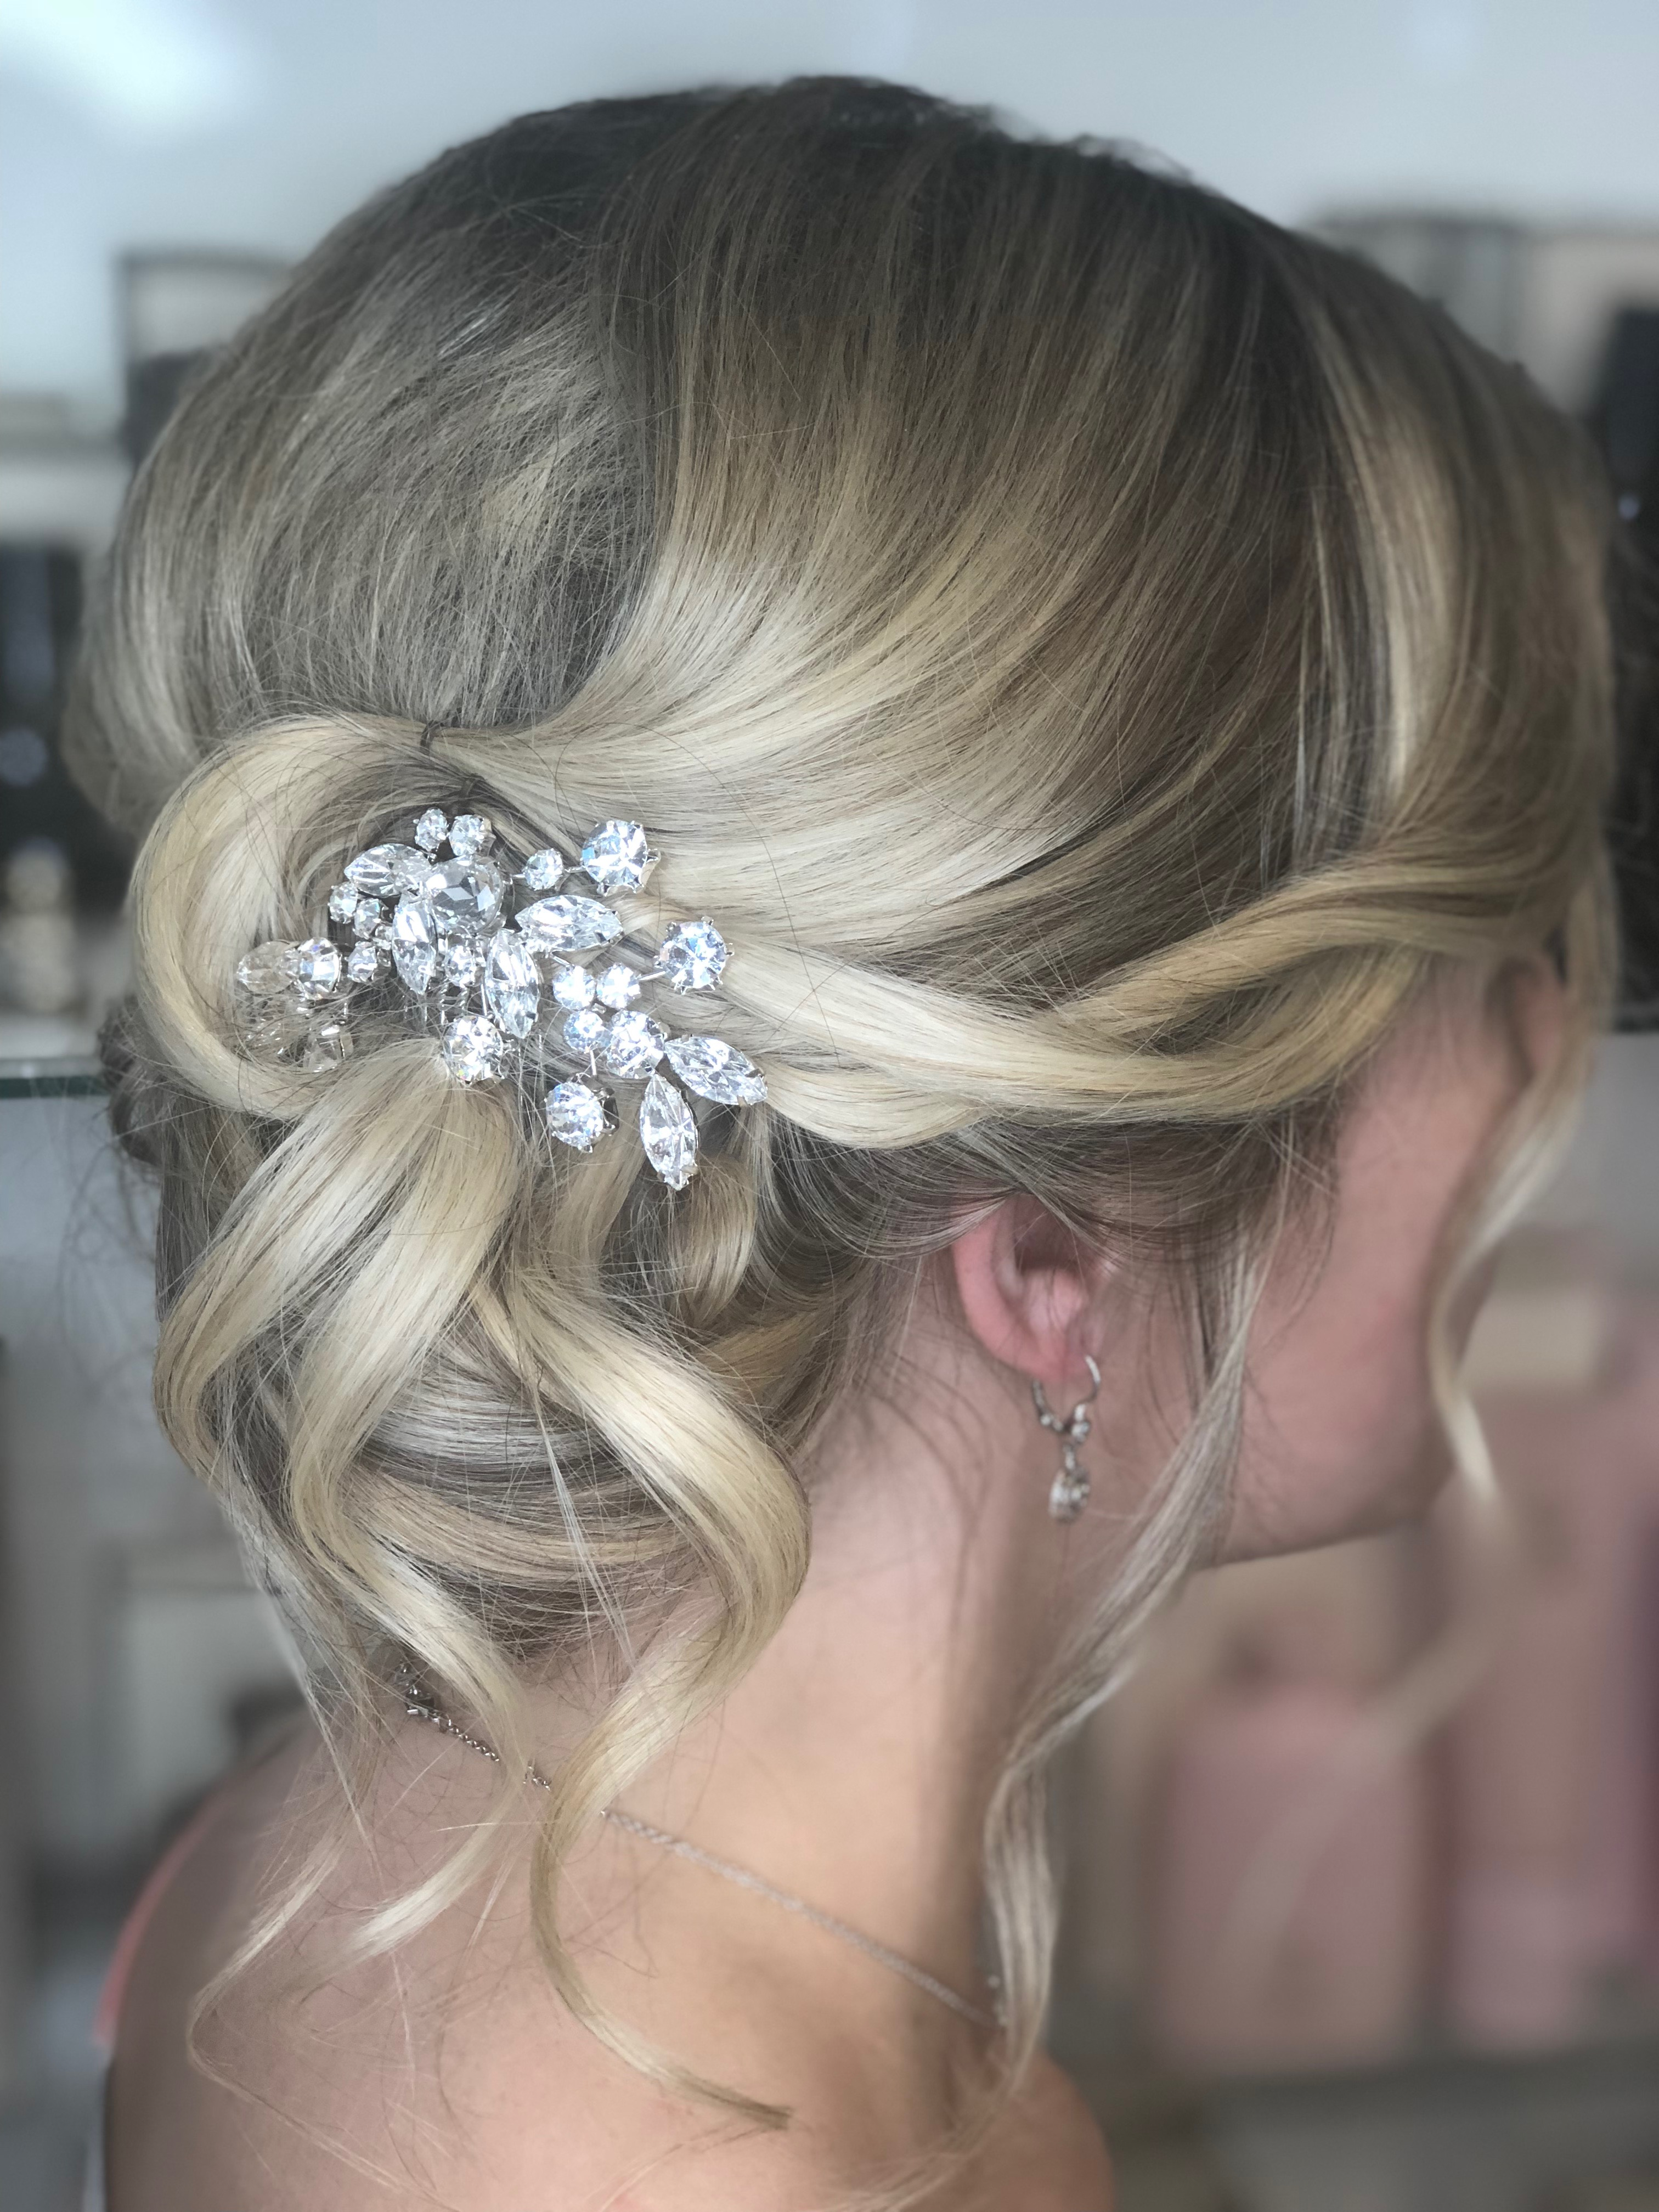 Elegant Rhinestone Silver Bridal Wedding Comb Hairpiece